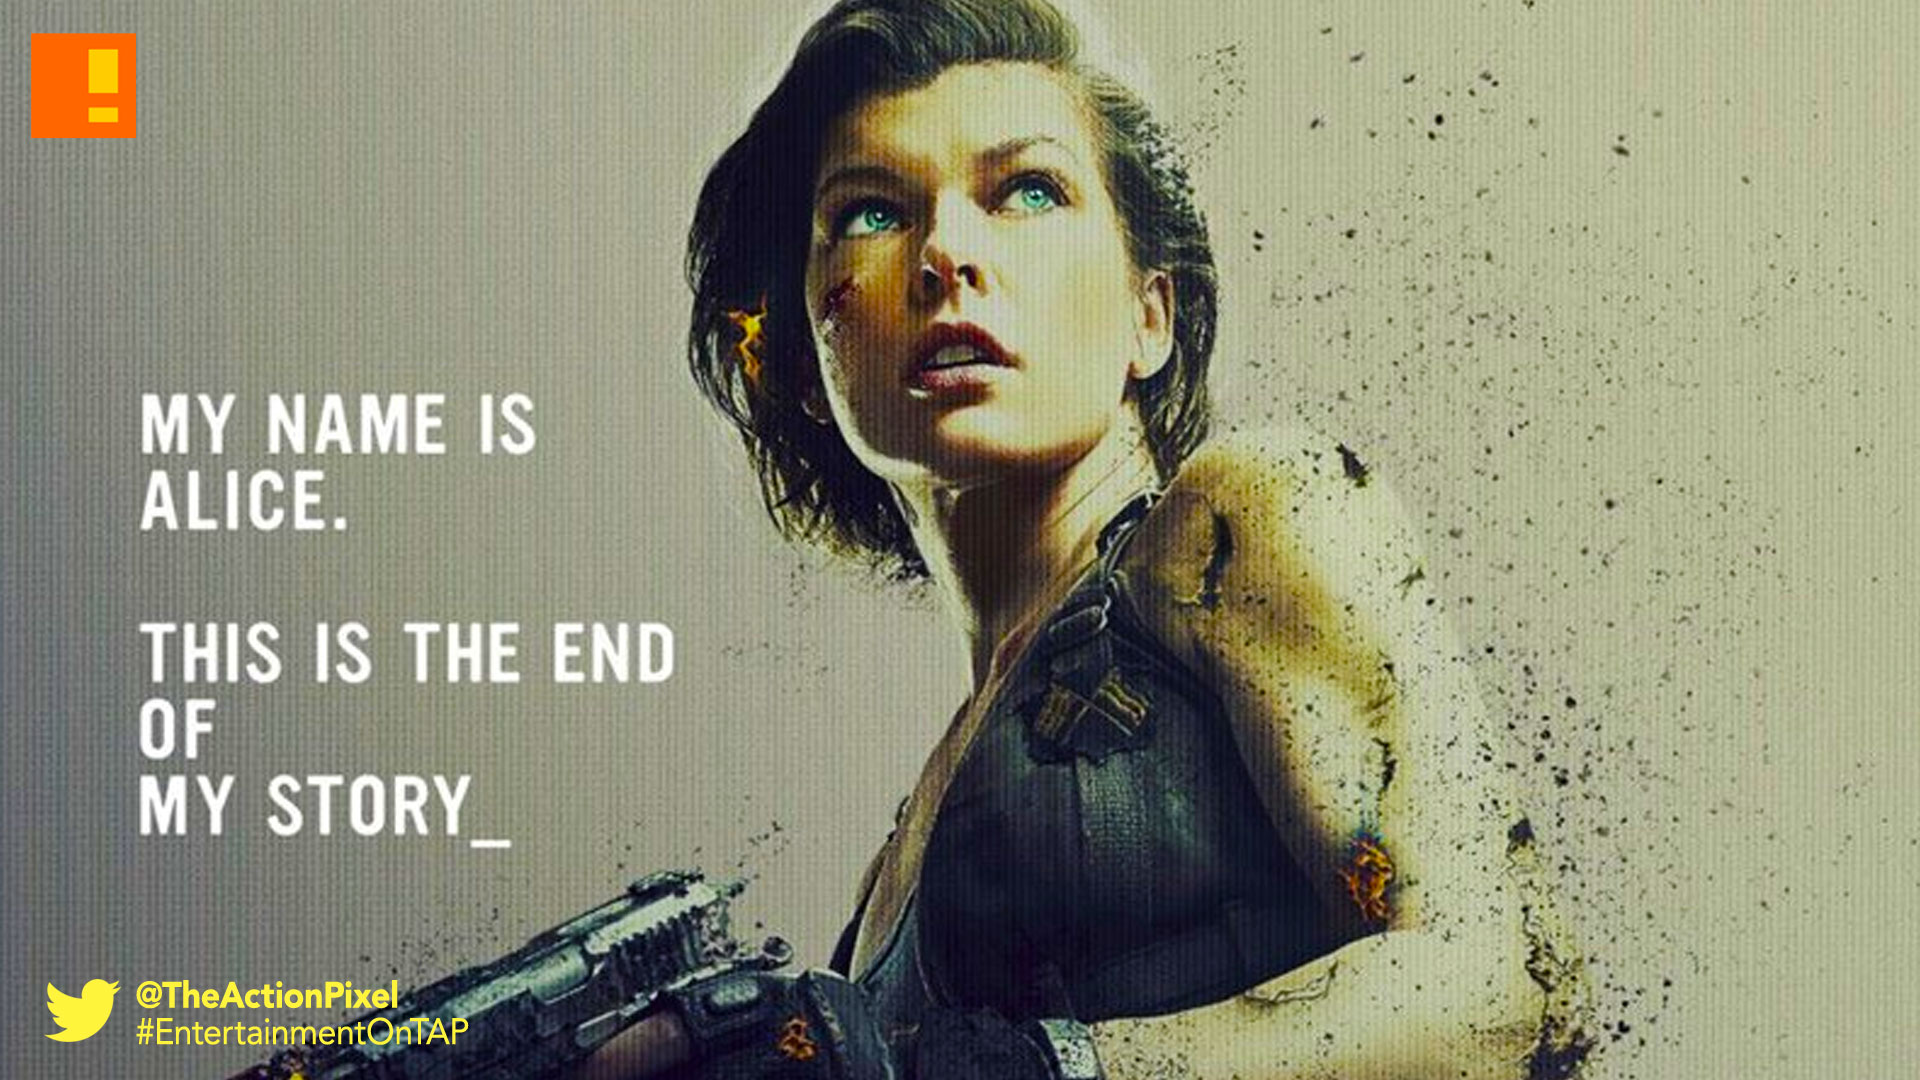 resident evil, resident evil the final chapter, poster, the action pixel, entertainment on tap, screen gems, trailer, teaser trailer,poster,